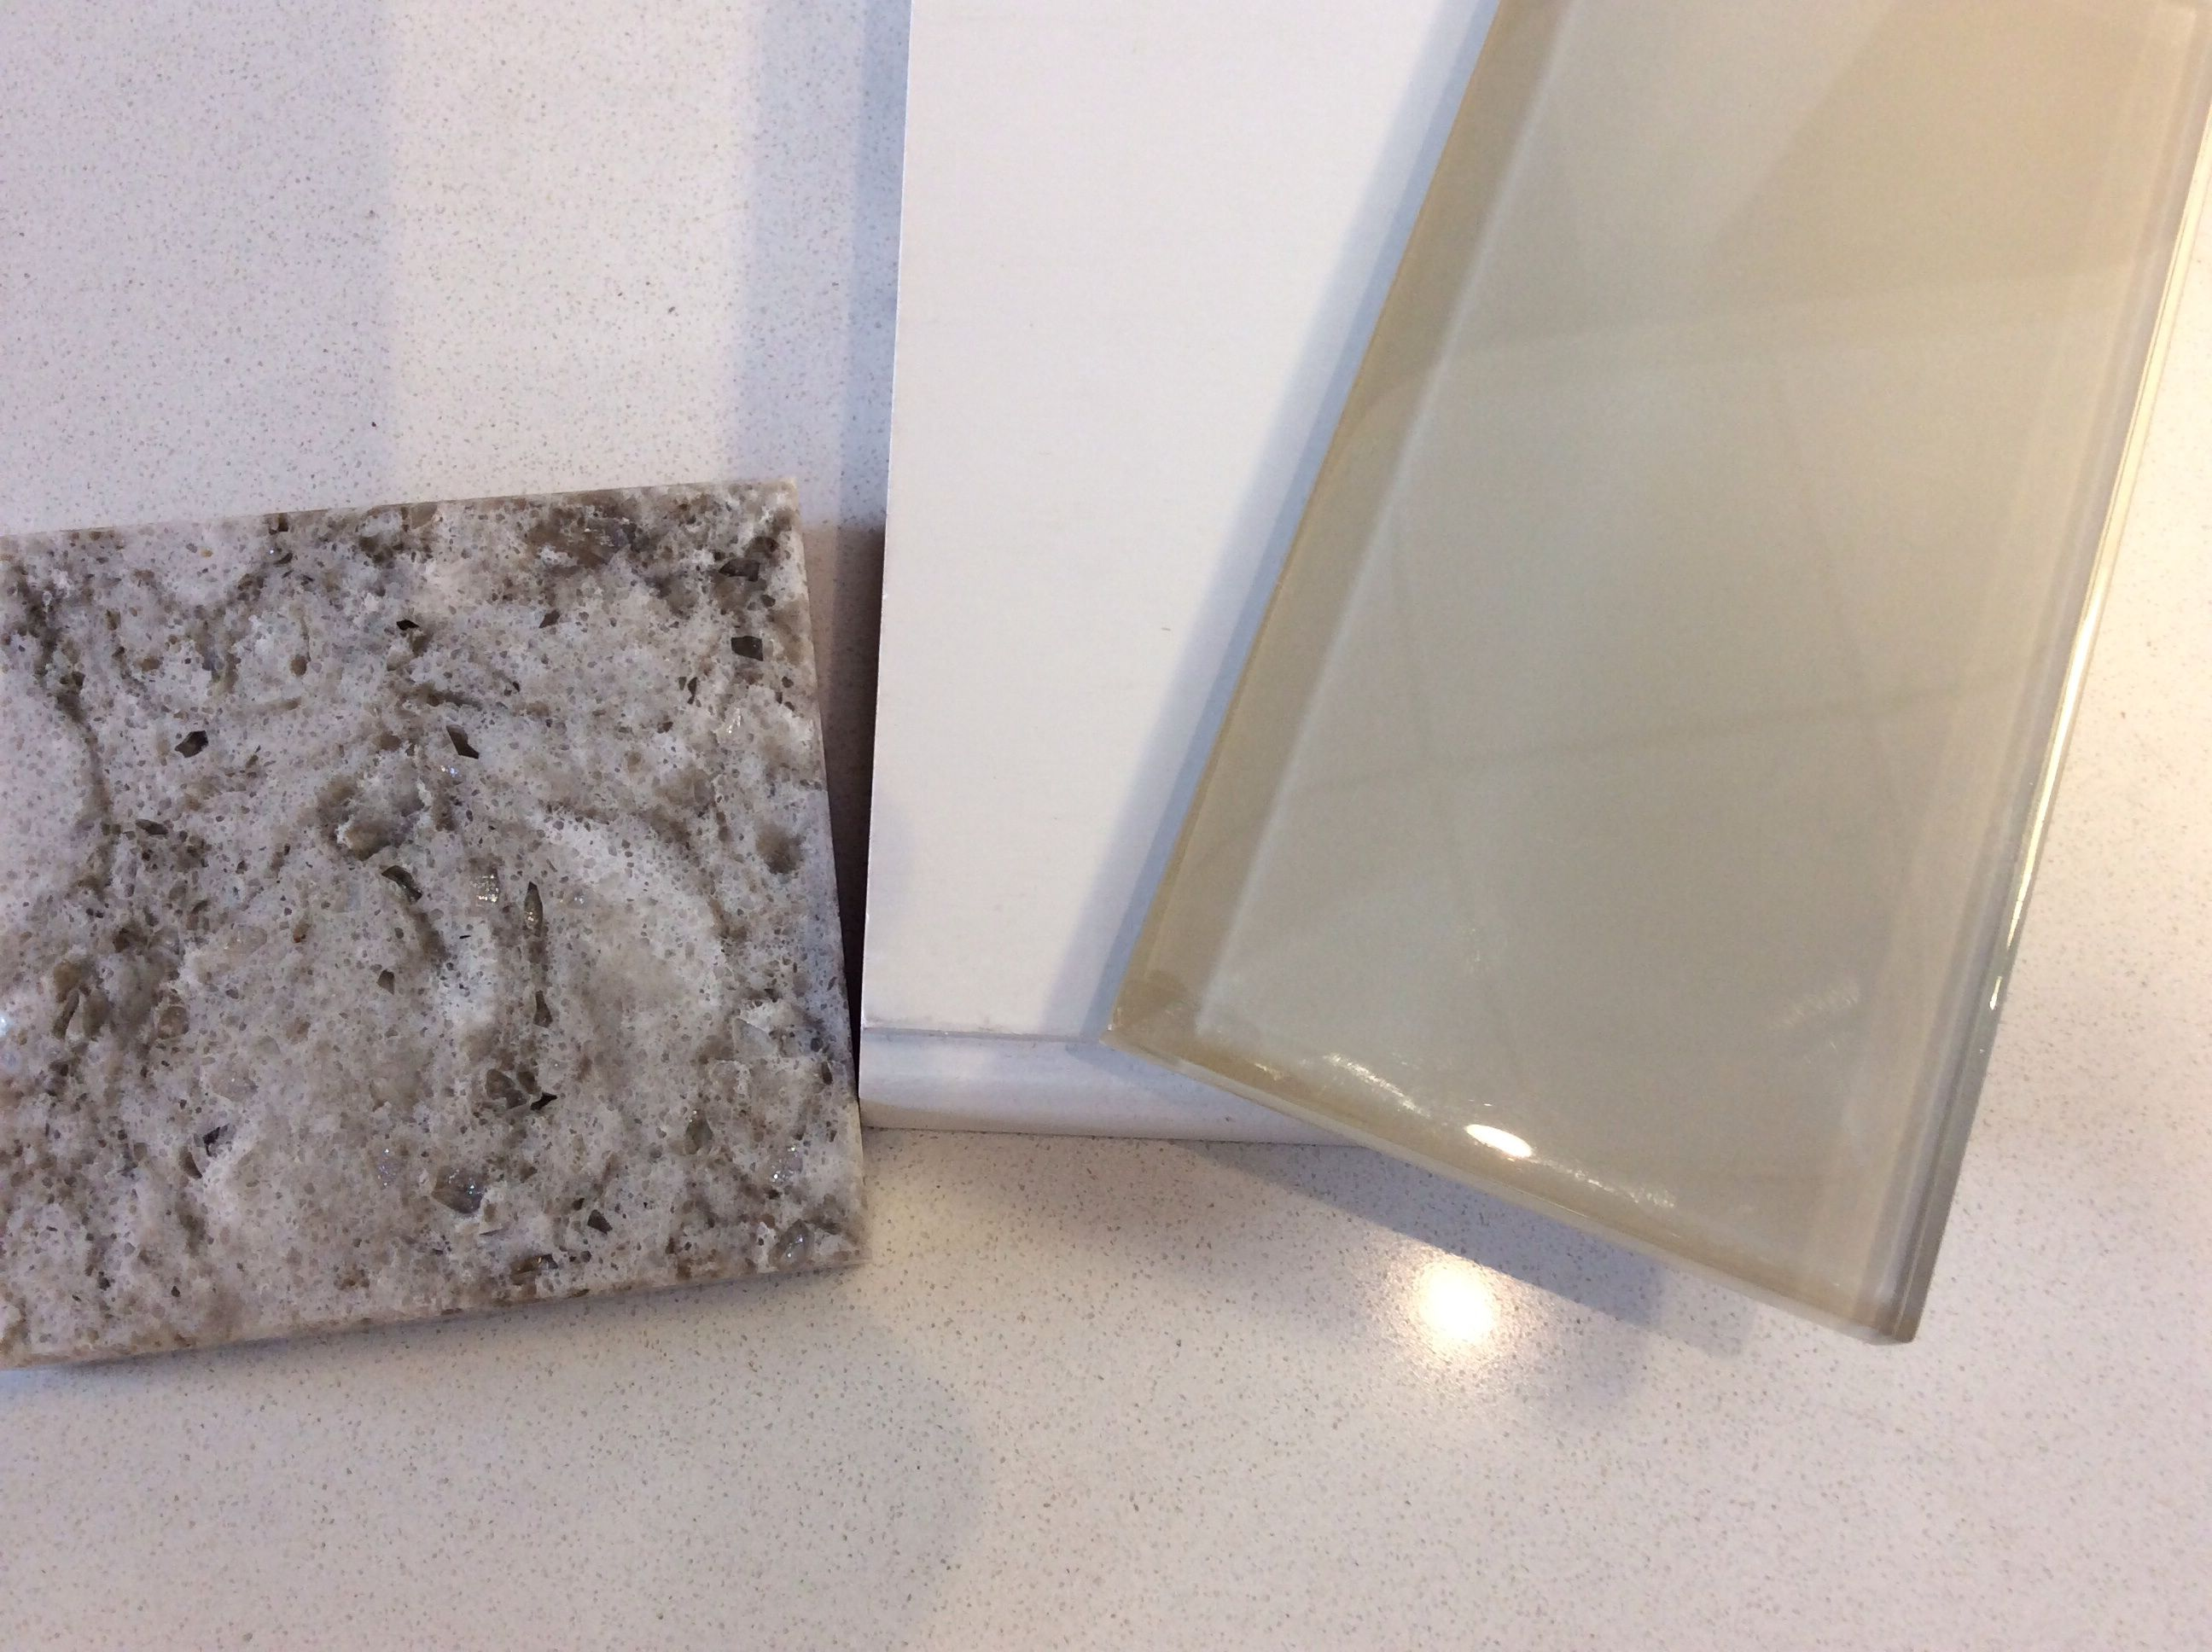 Taupe Quartz Countertop White Shaker Cabinet And Taupe Glass Subway Tile Samples